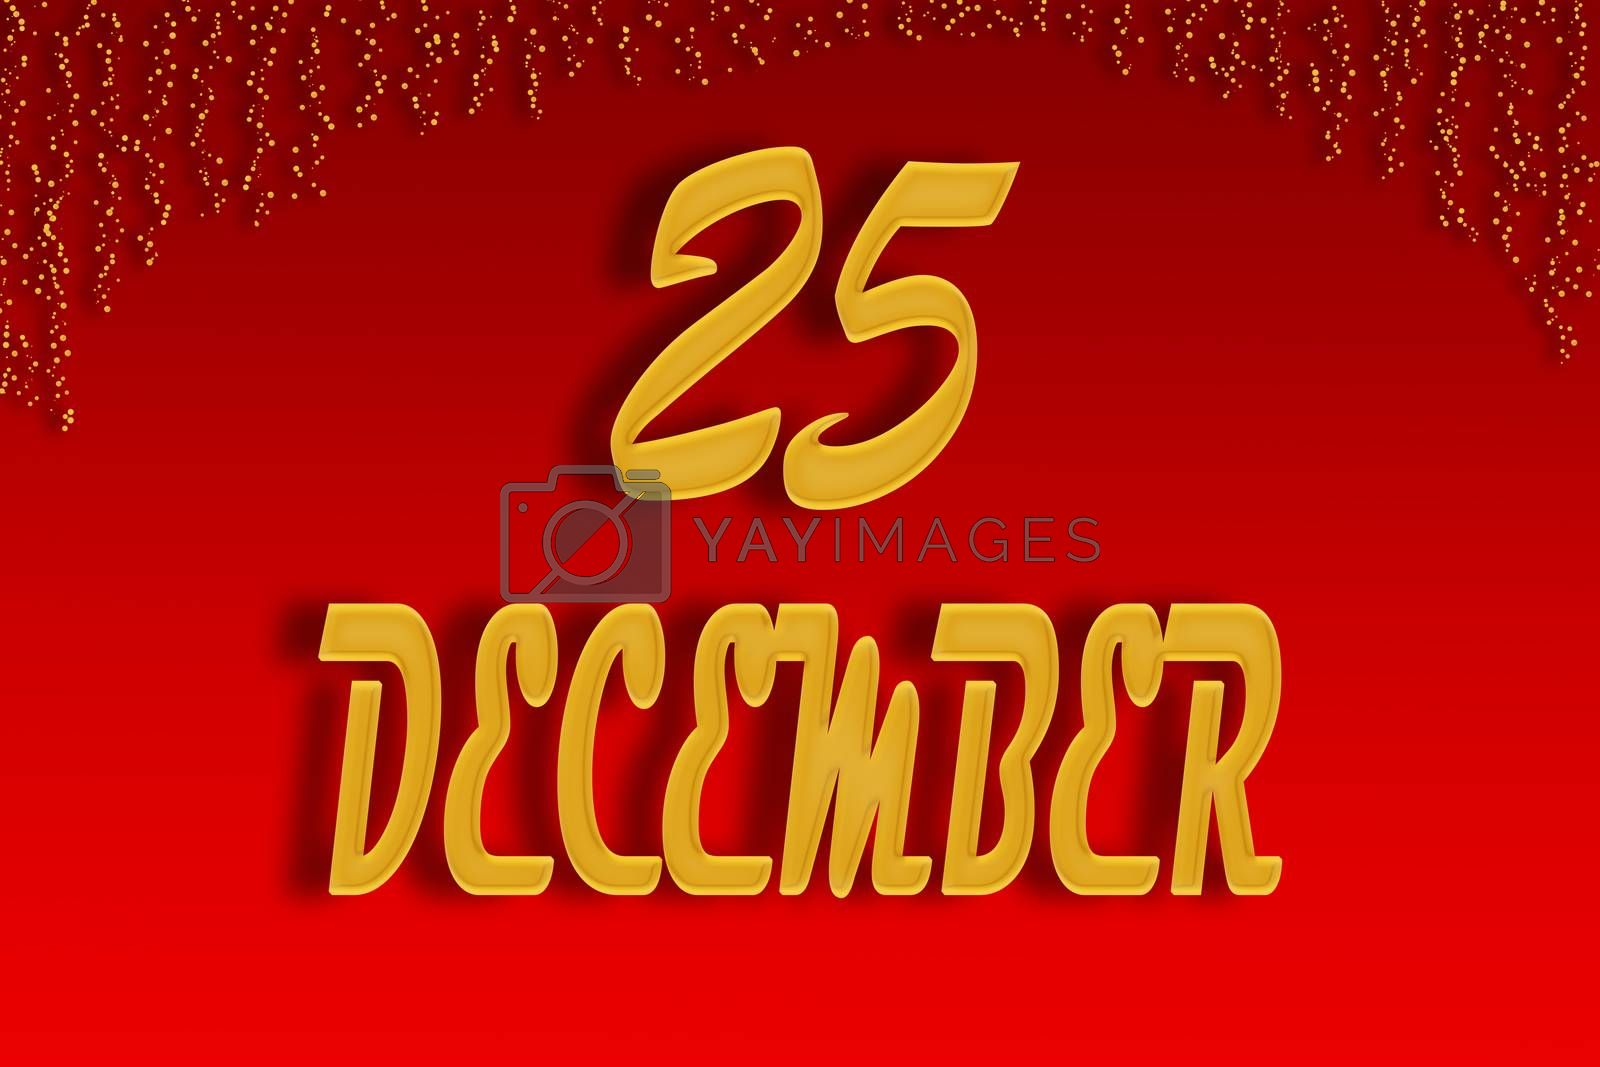 December 25 is written on a red gradient background